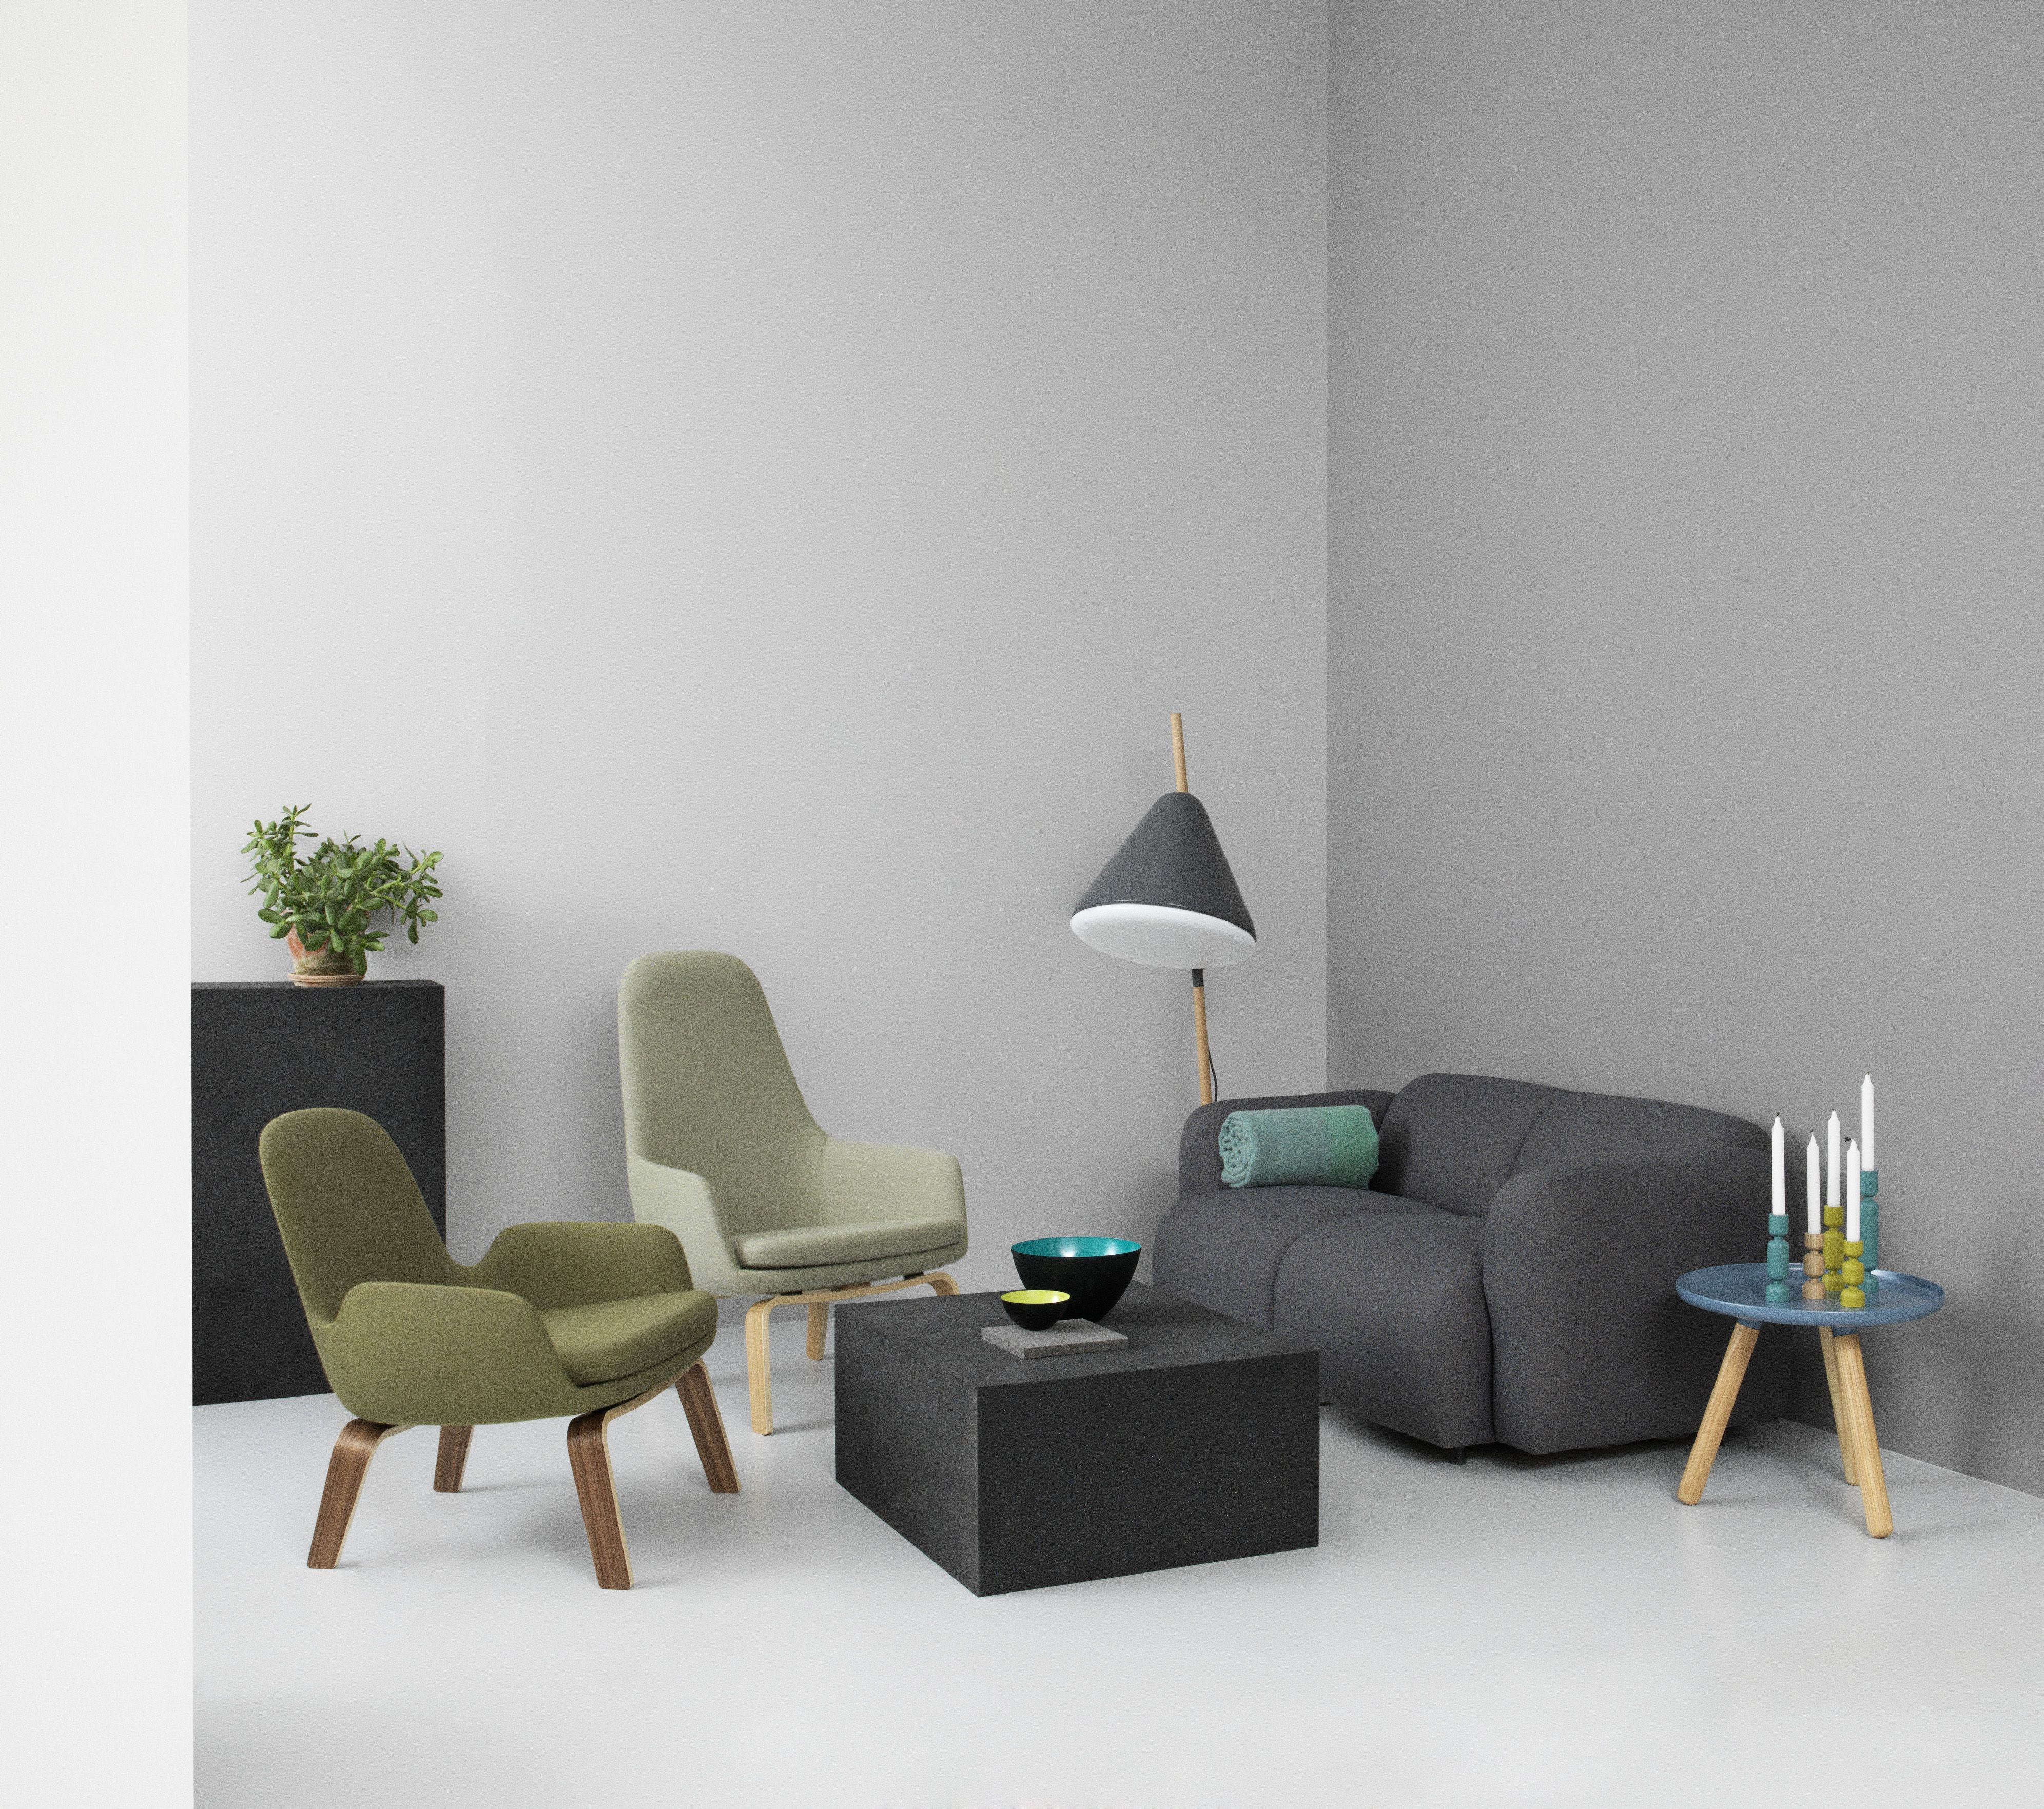 Dusted green and gray tones Era lounge chairs